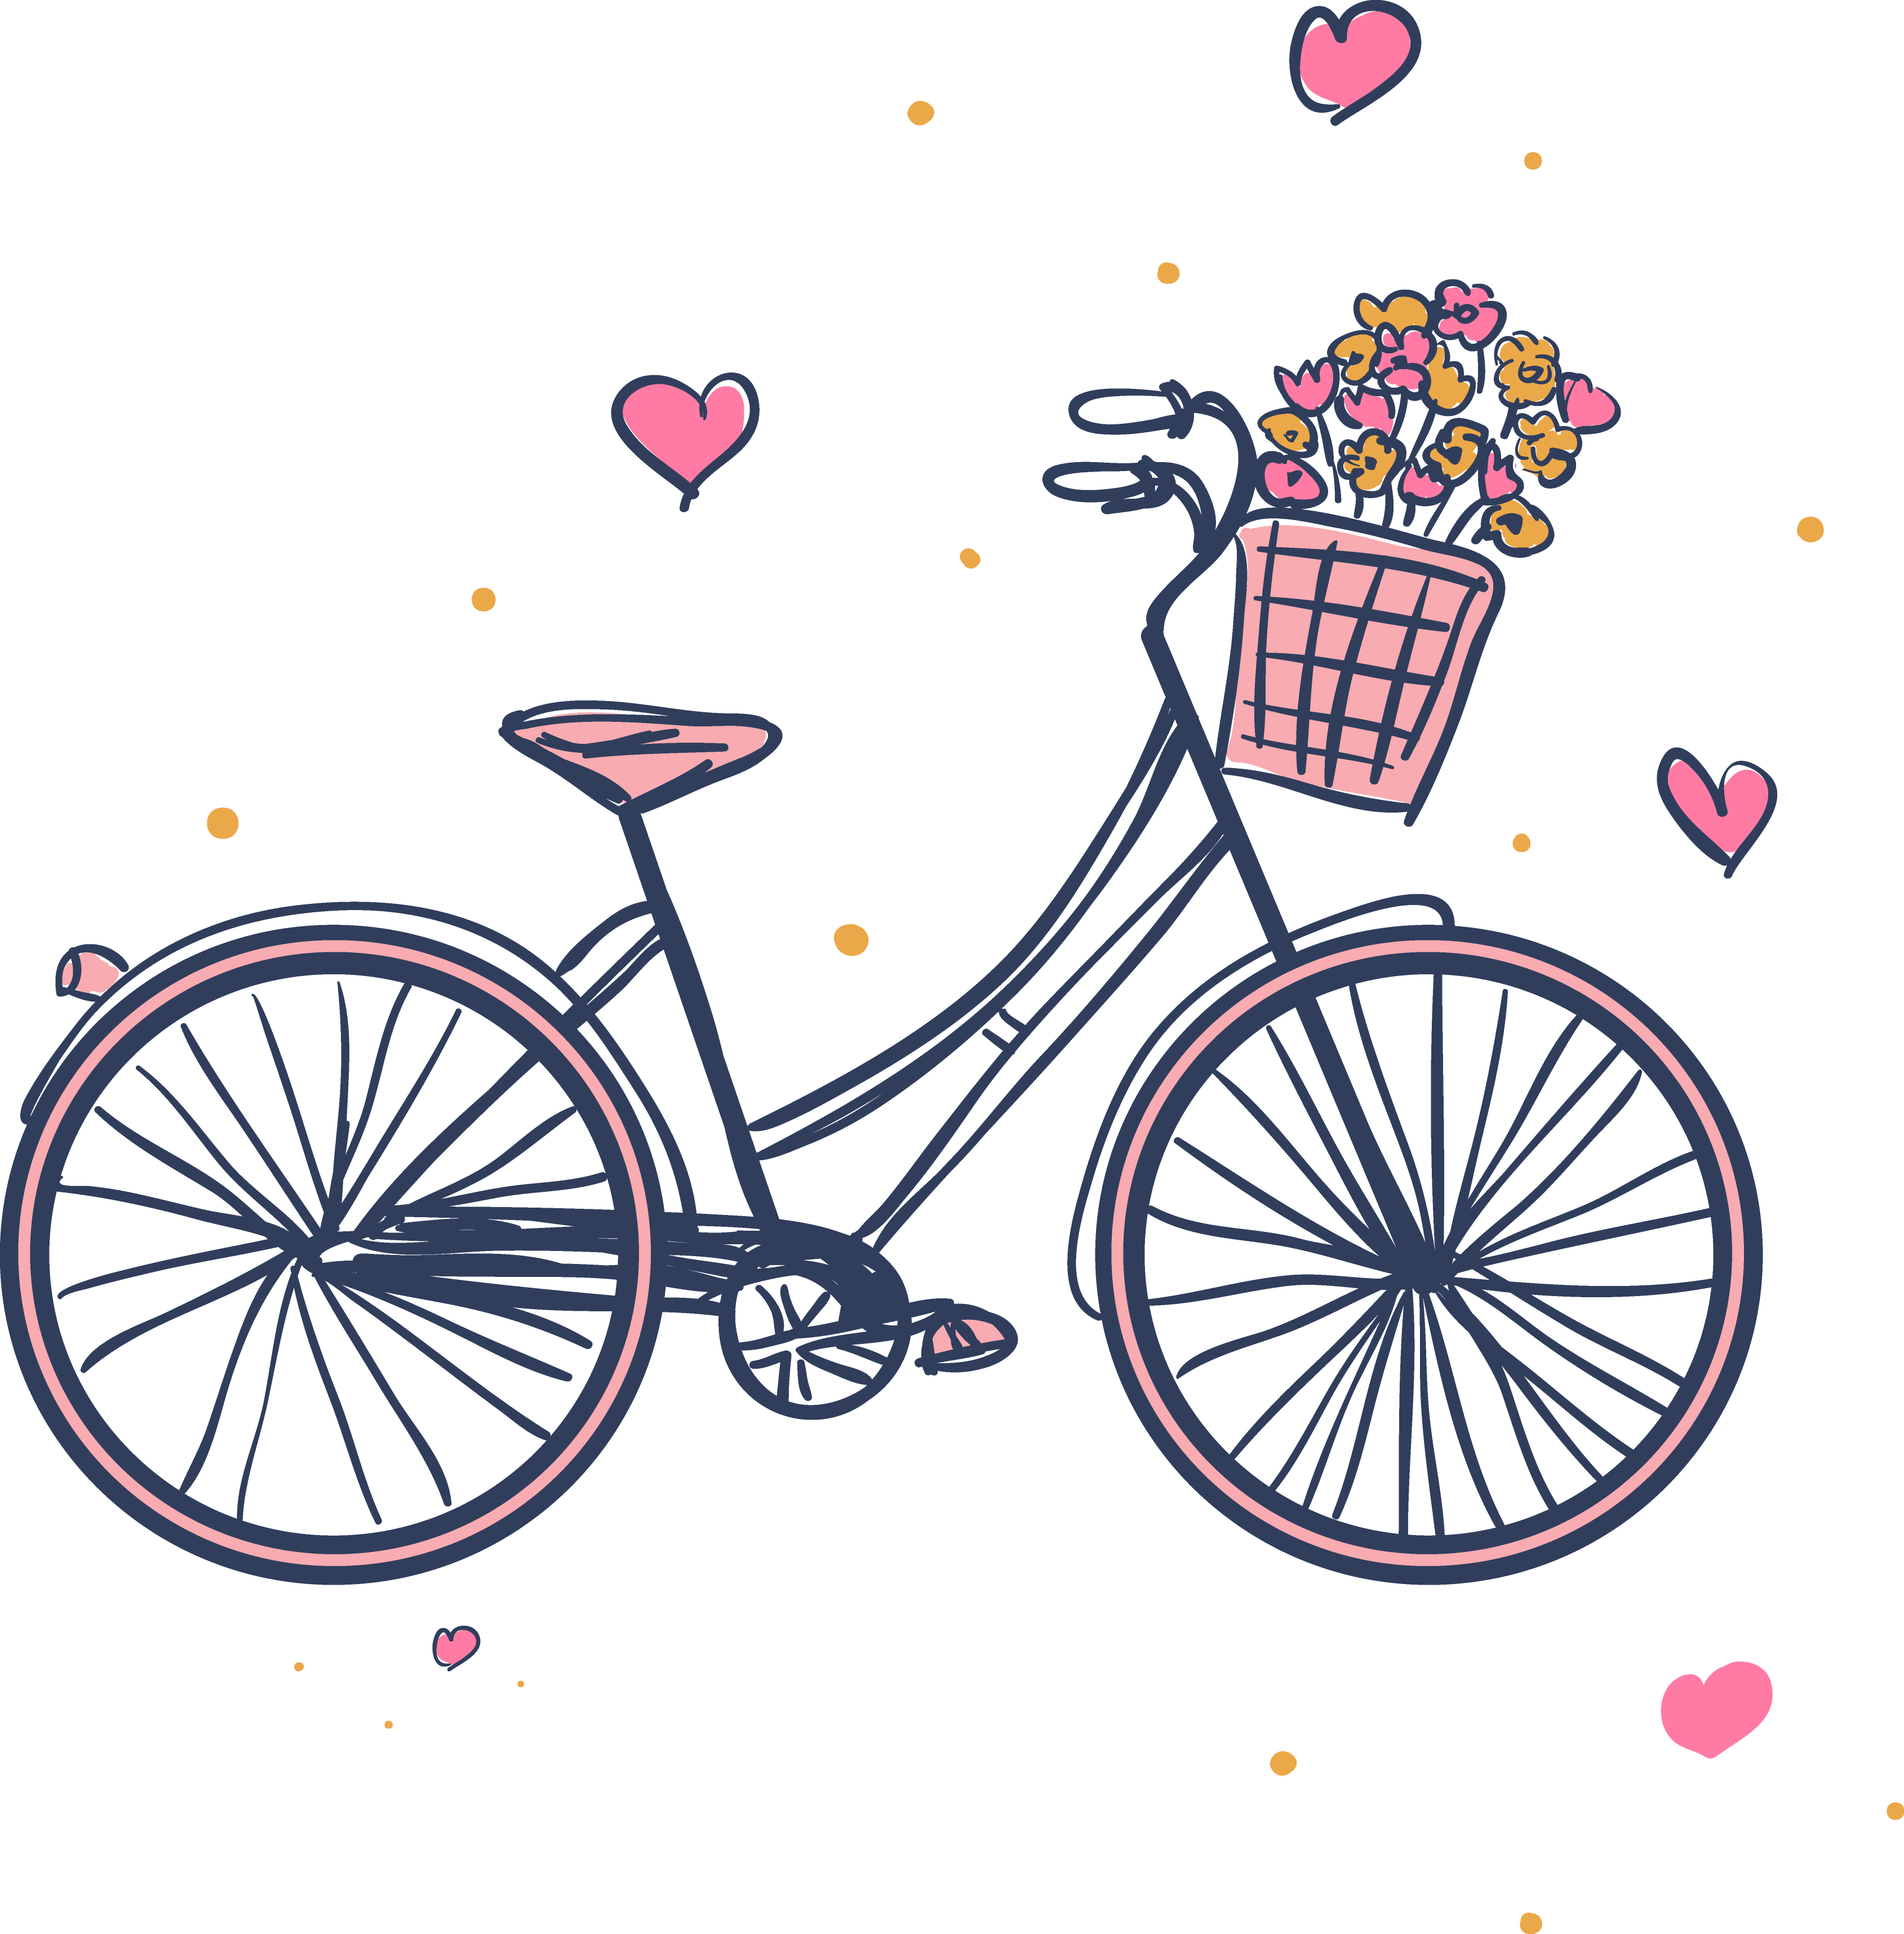 Bicycle with flower basket clipart svg black and white stock Raleigh Bicycle Company Bicycle frame Hybrid bicycle Giant Bicycles ... svg black and white stock